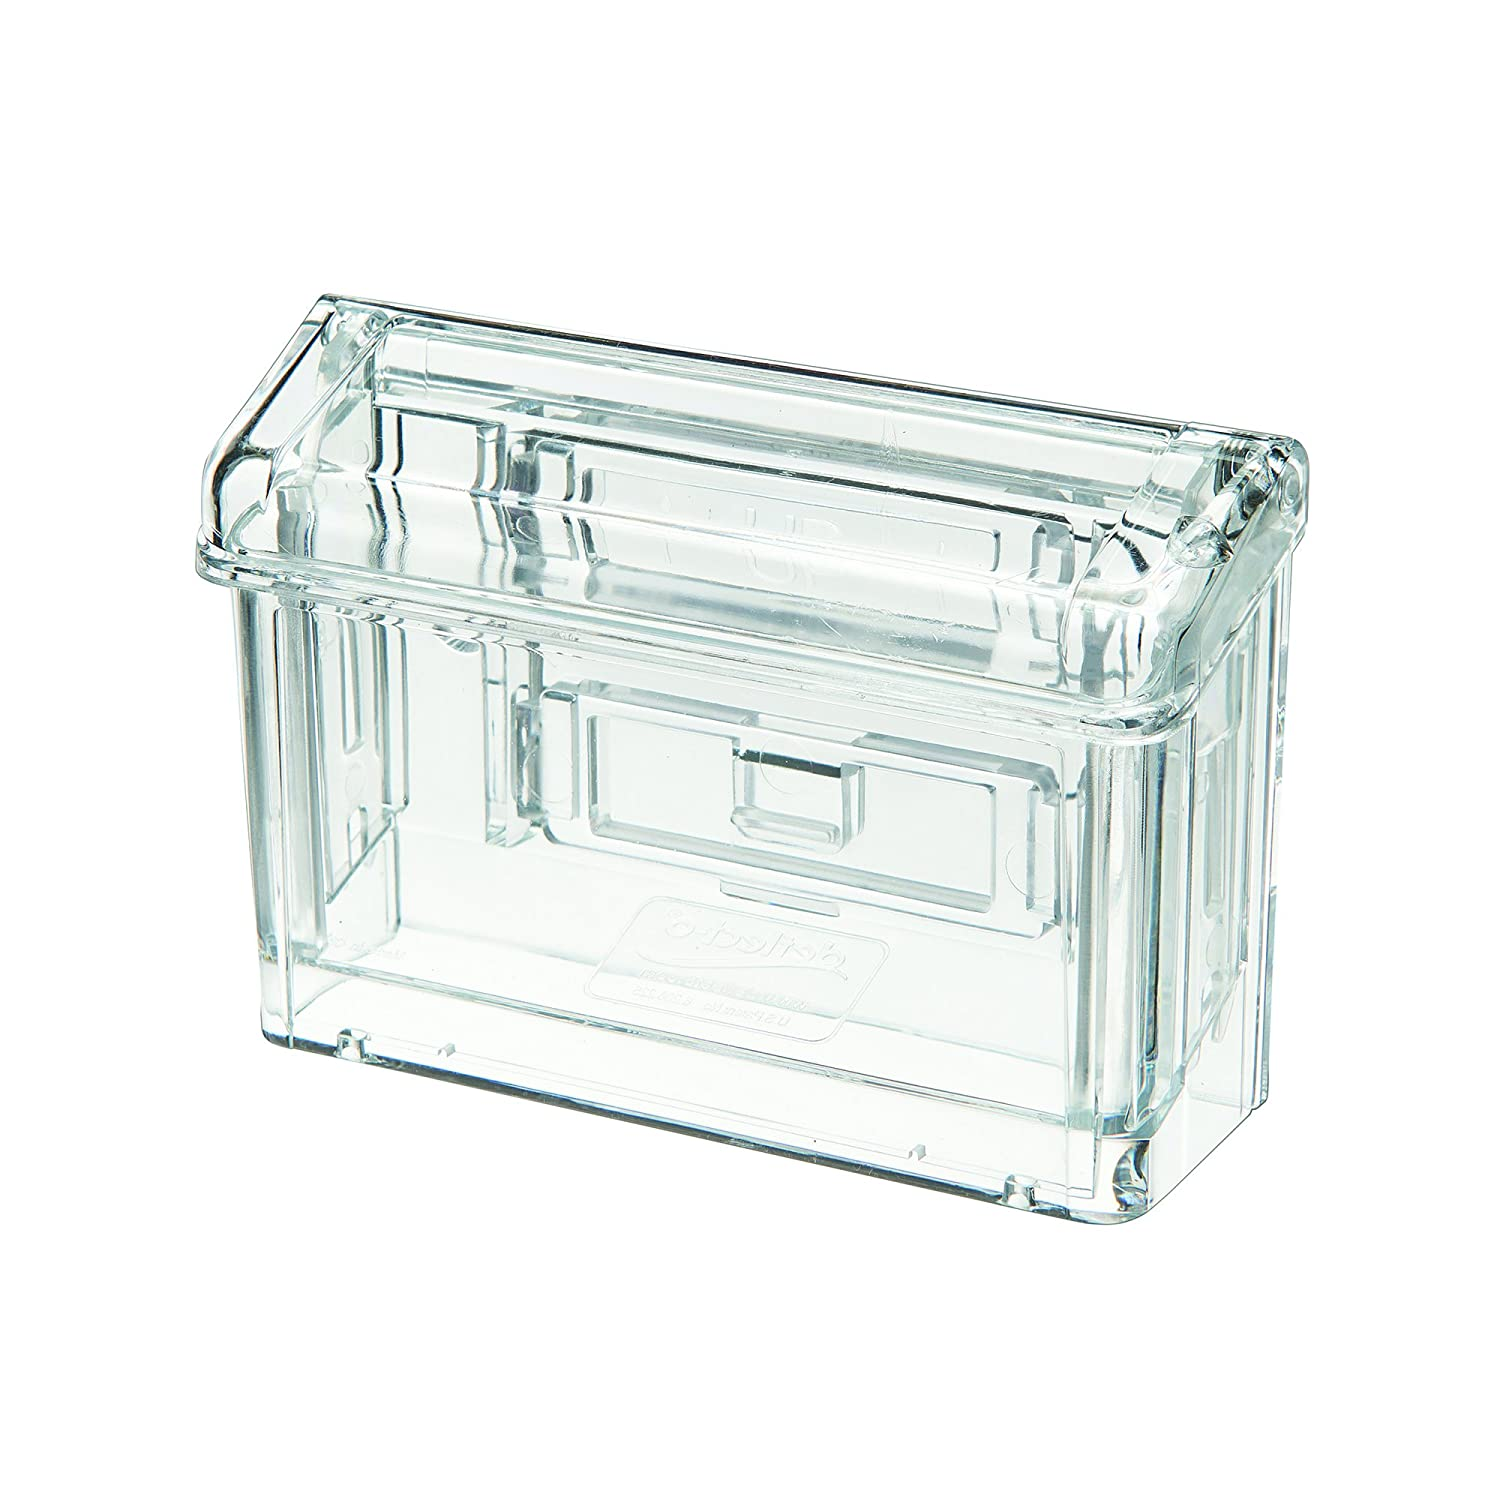 Deflect-o 70901 Grab-A-Card Outdoor Business Card Holder -2.8-Inch x4.3-Inch x1.5-Inch -1 Each -Clear S.P. Richards CA